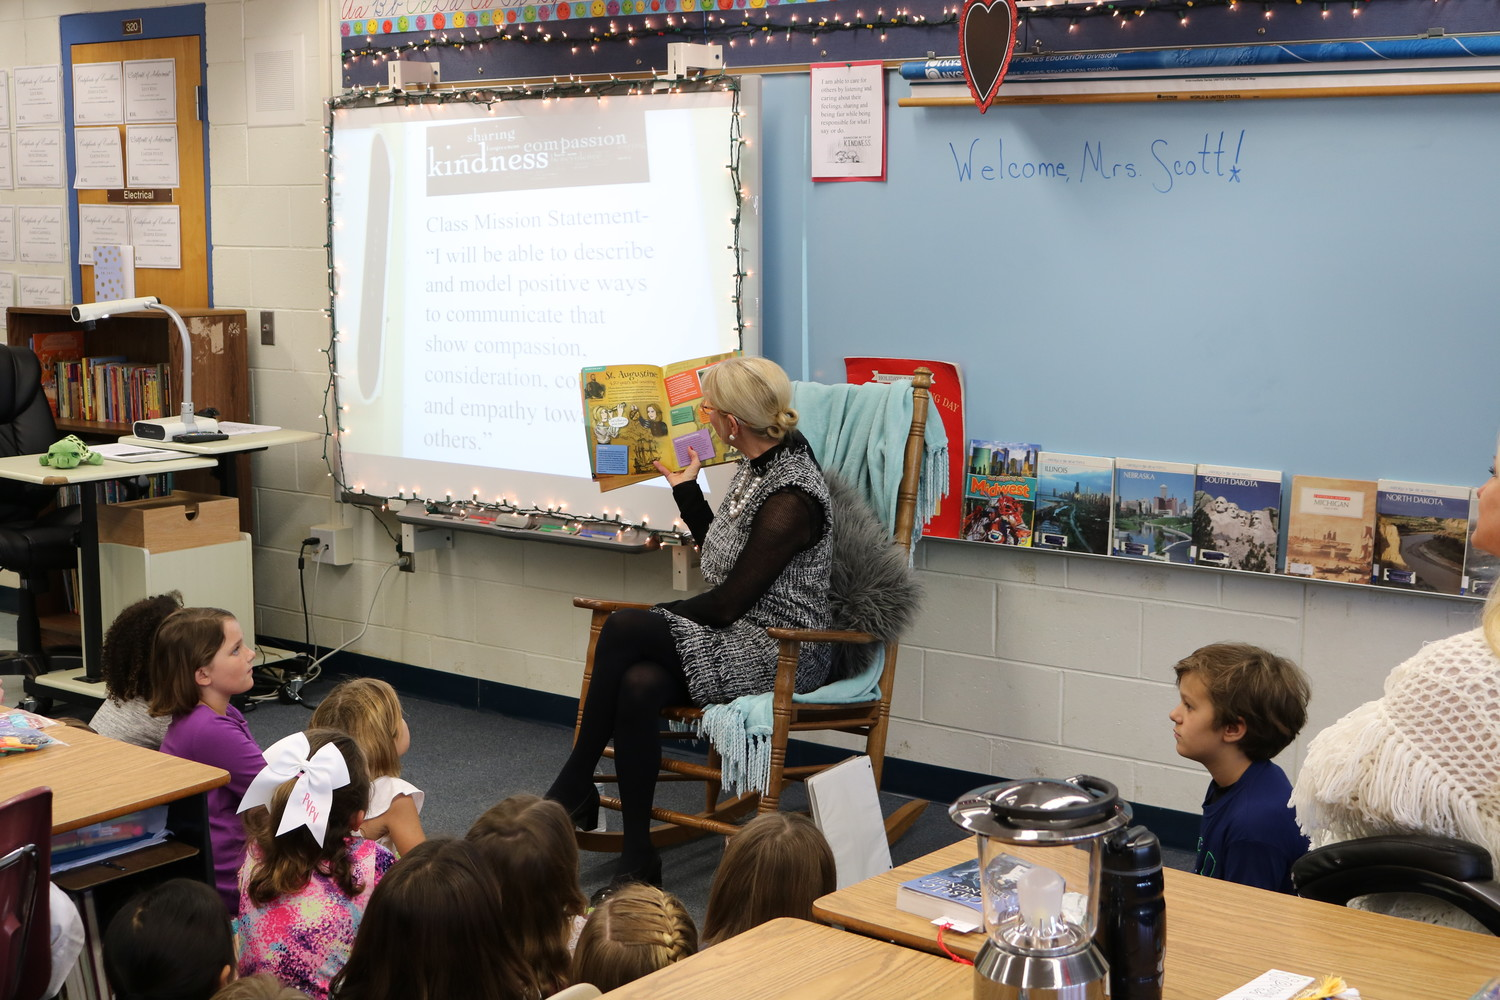 First Lady Ann Scott reads a story to PVPV-Rawlings Elementary School students as part of her literacy tour.